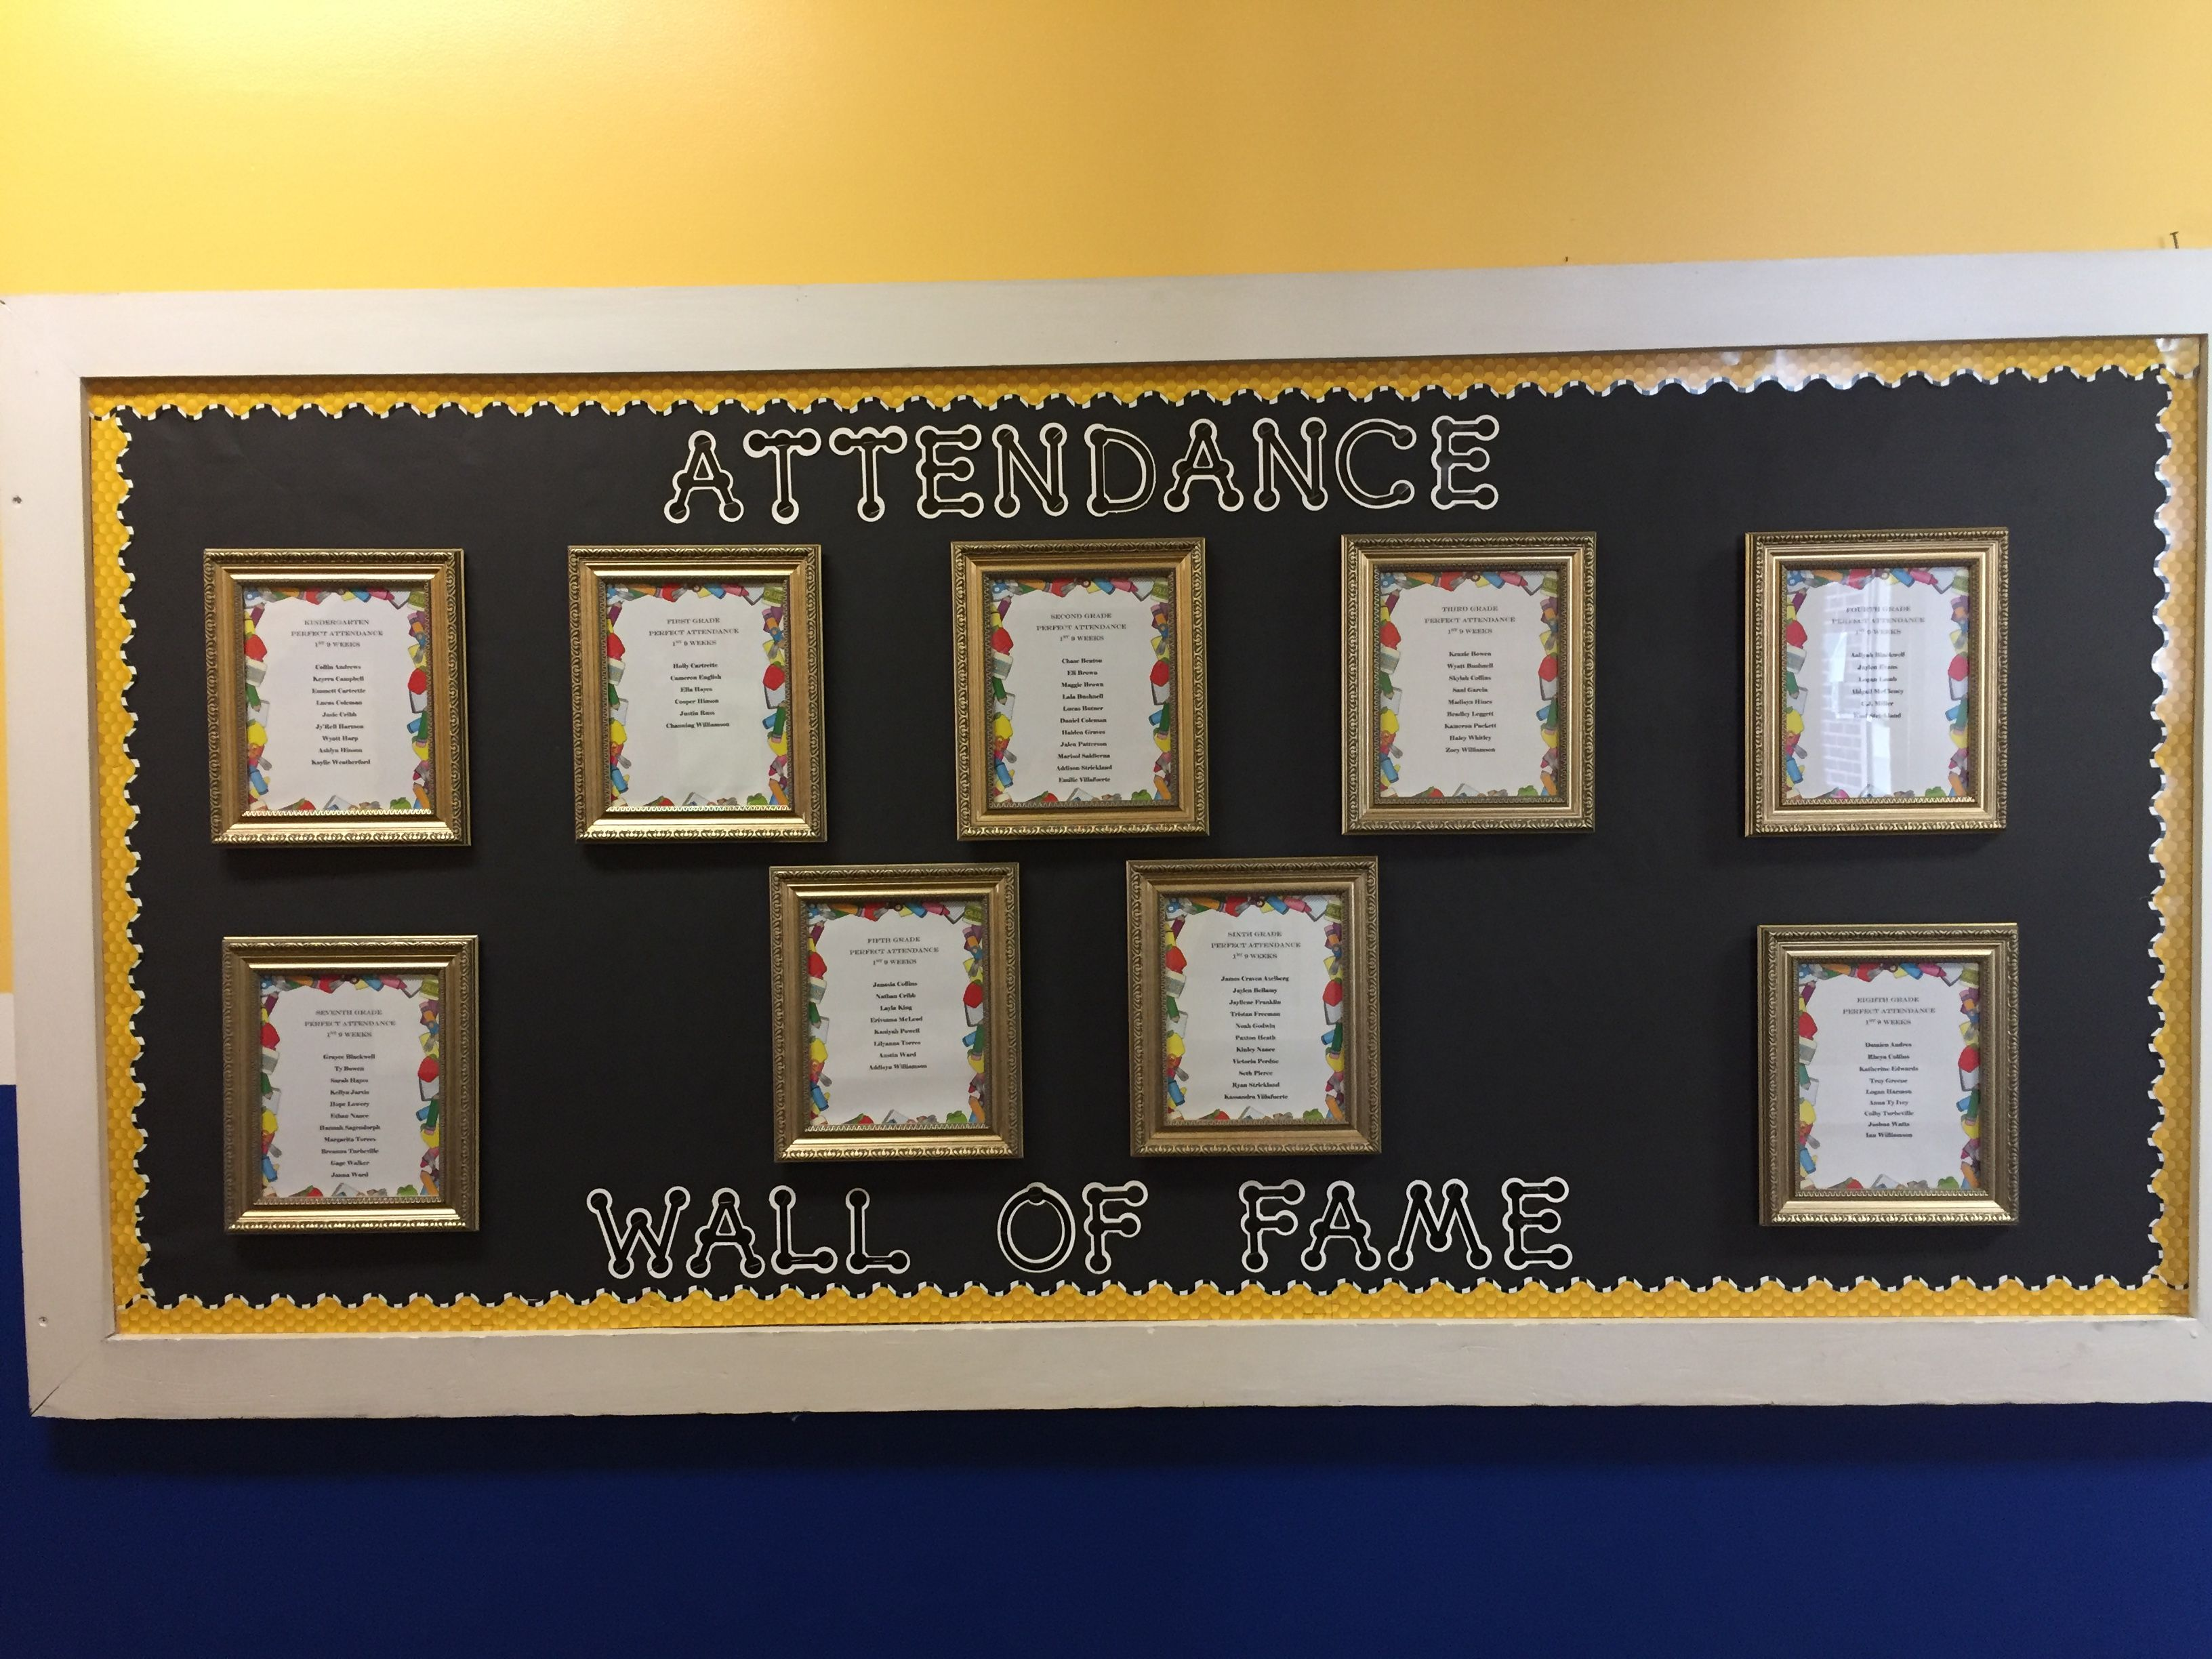 Attendance Wall Of Fame